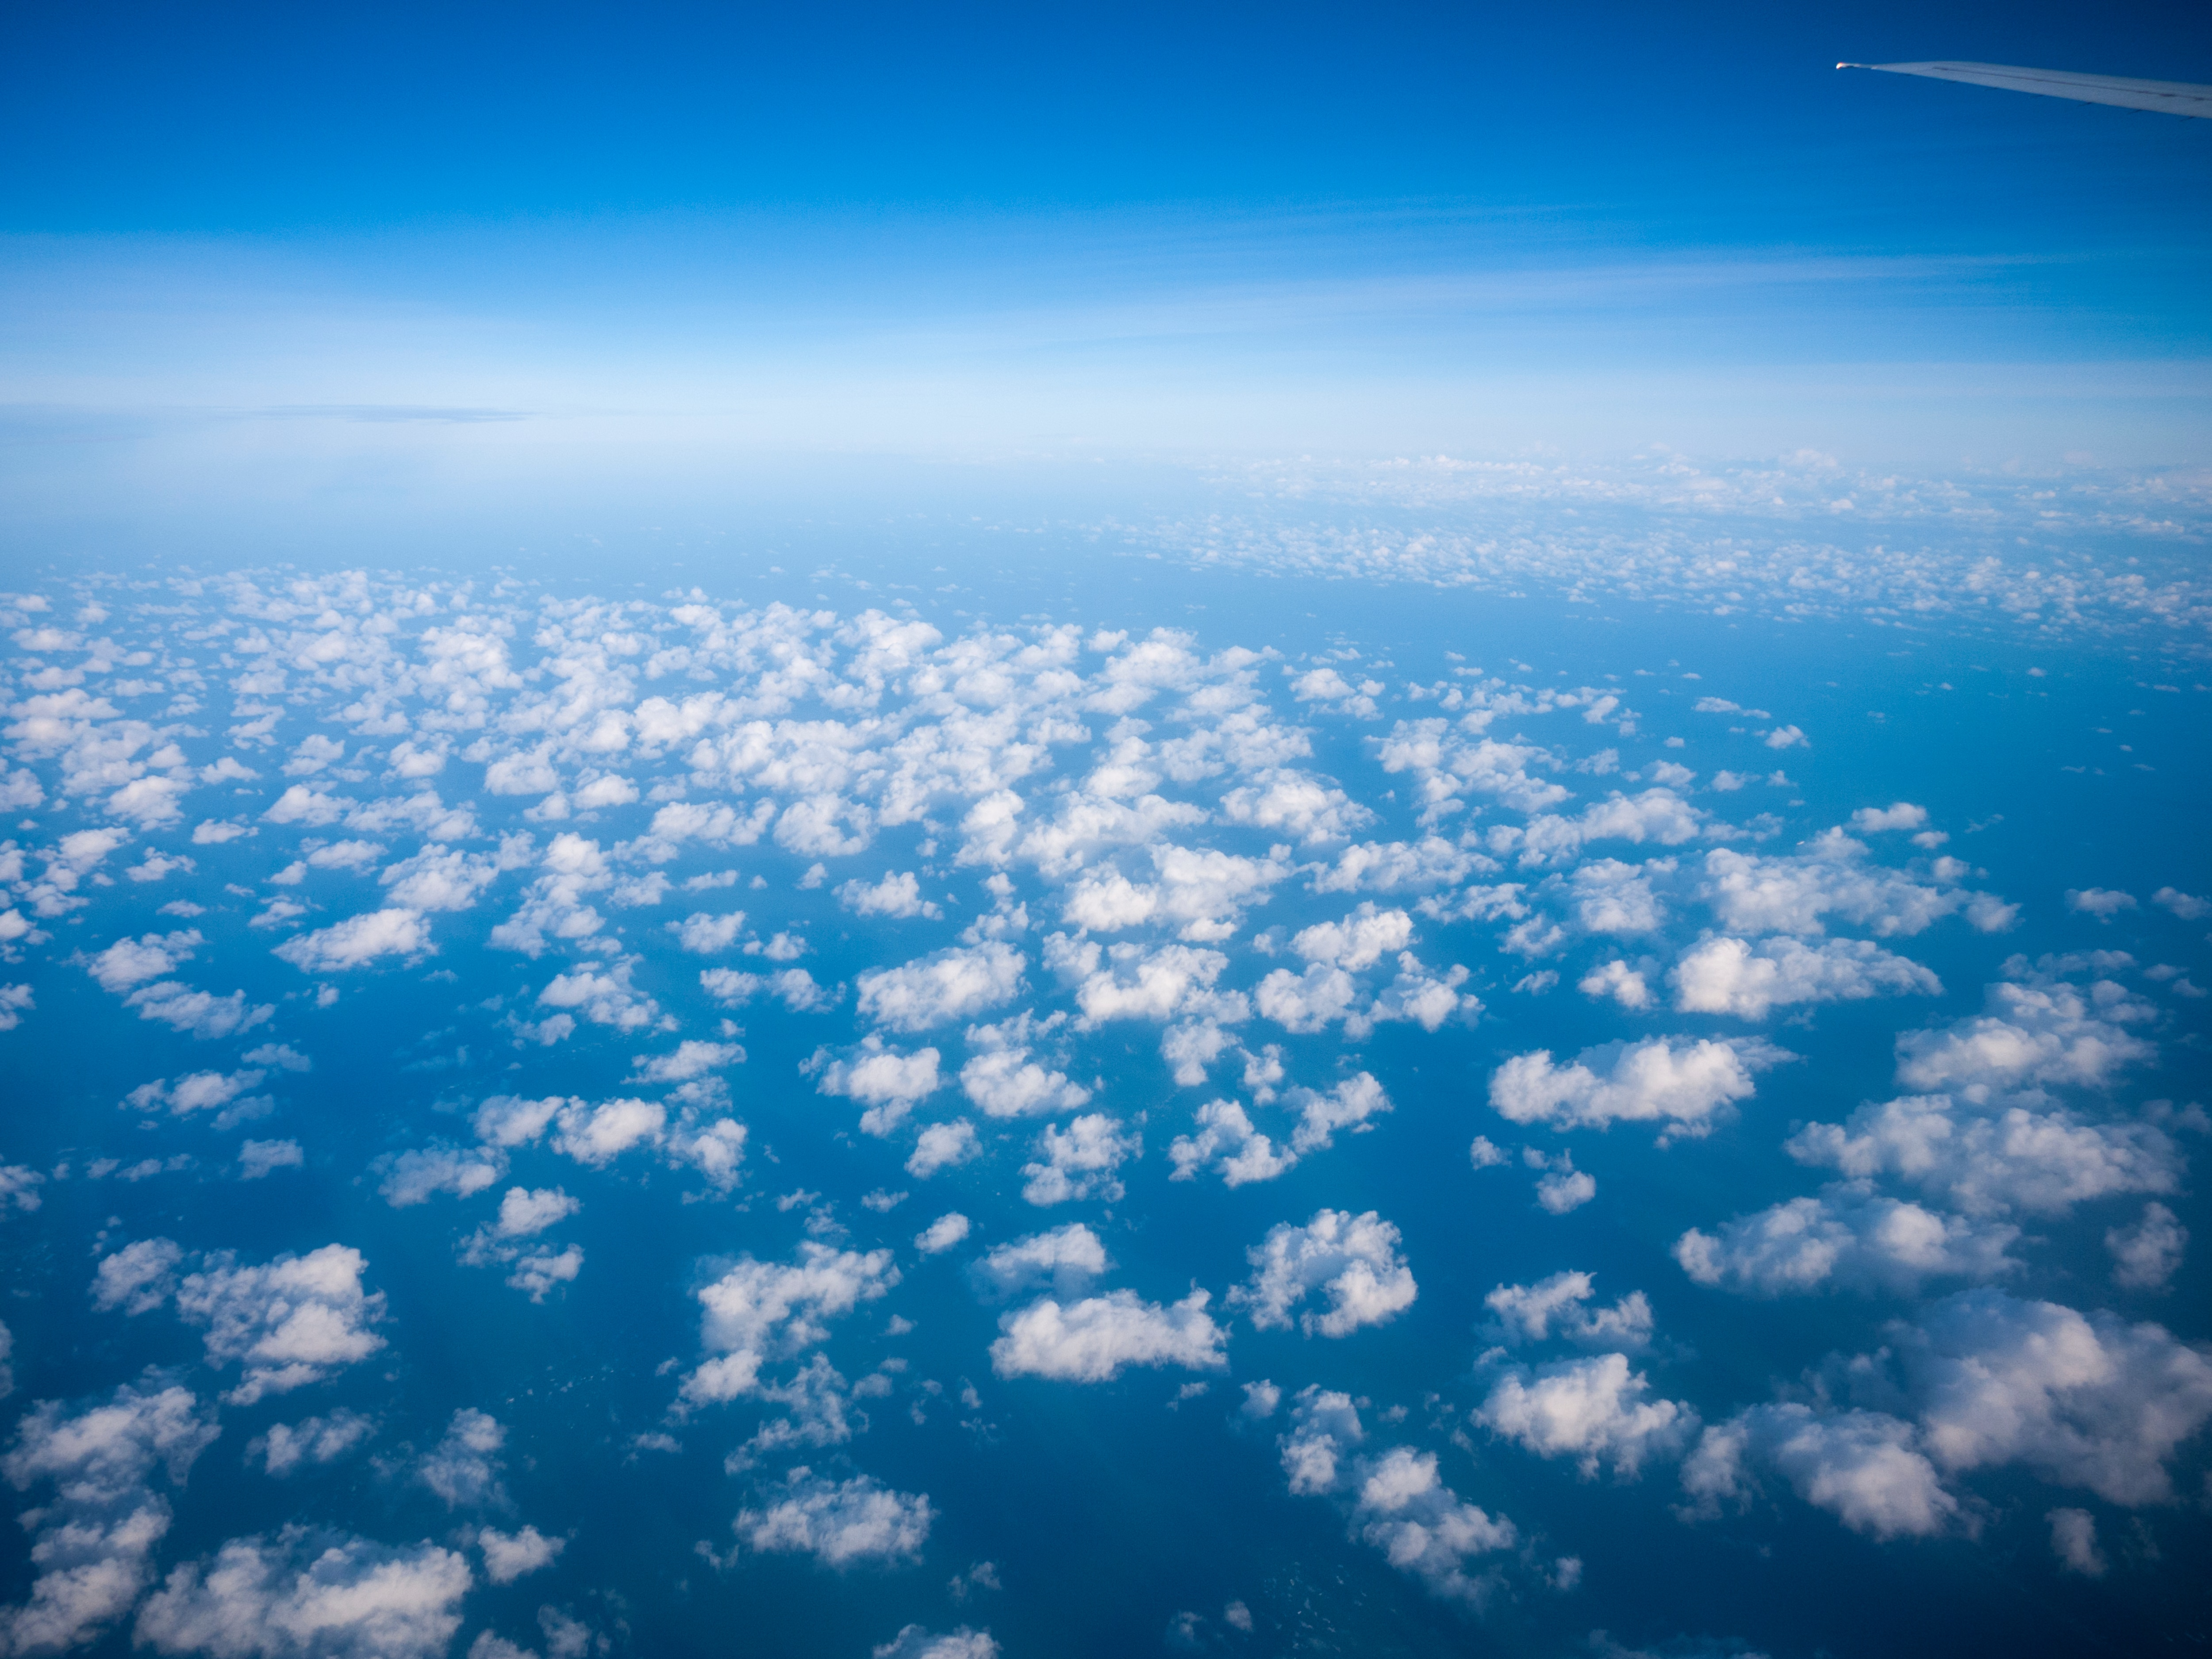 White Clouds And Blue Sky, Airplane, Atmosphere, Clouds, Daylight, HQ Photo